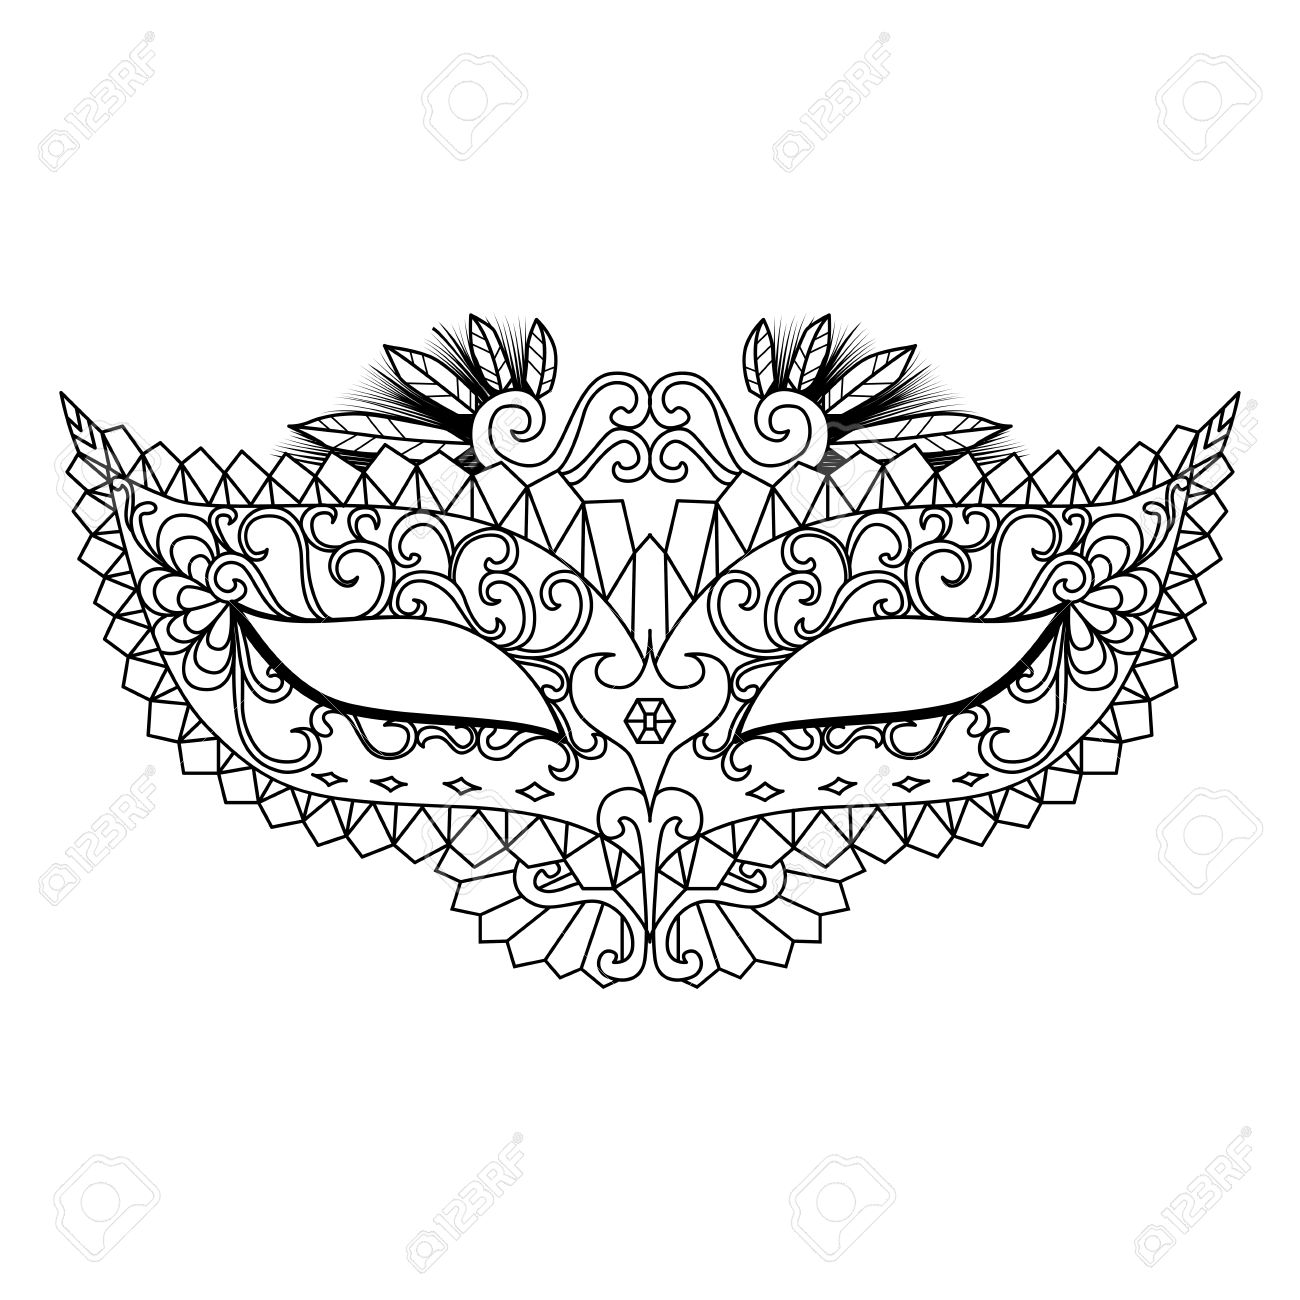 Four carnival mask designs for coloring book for adult or element..